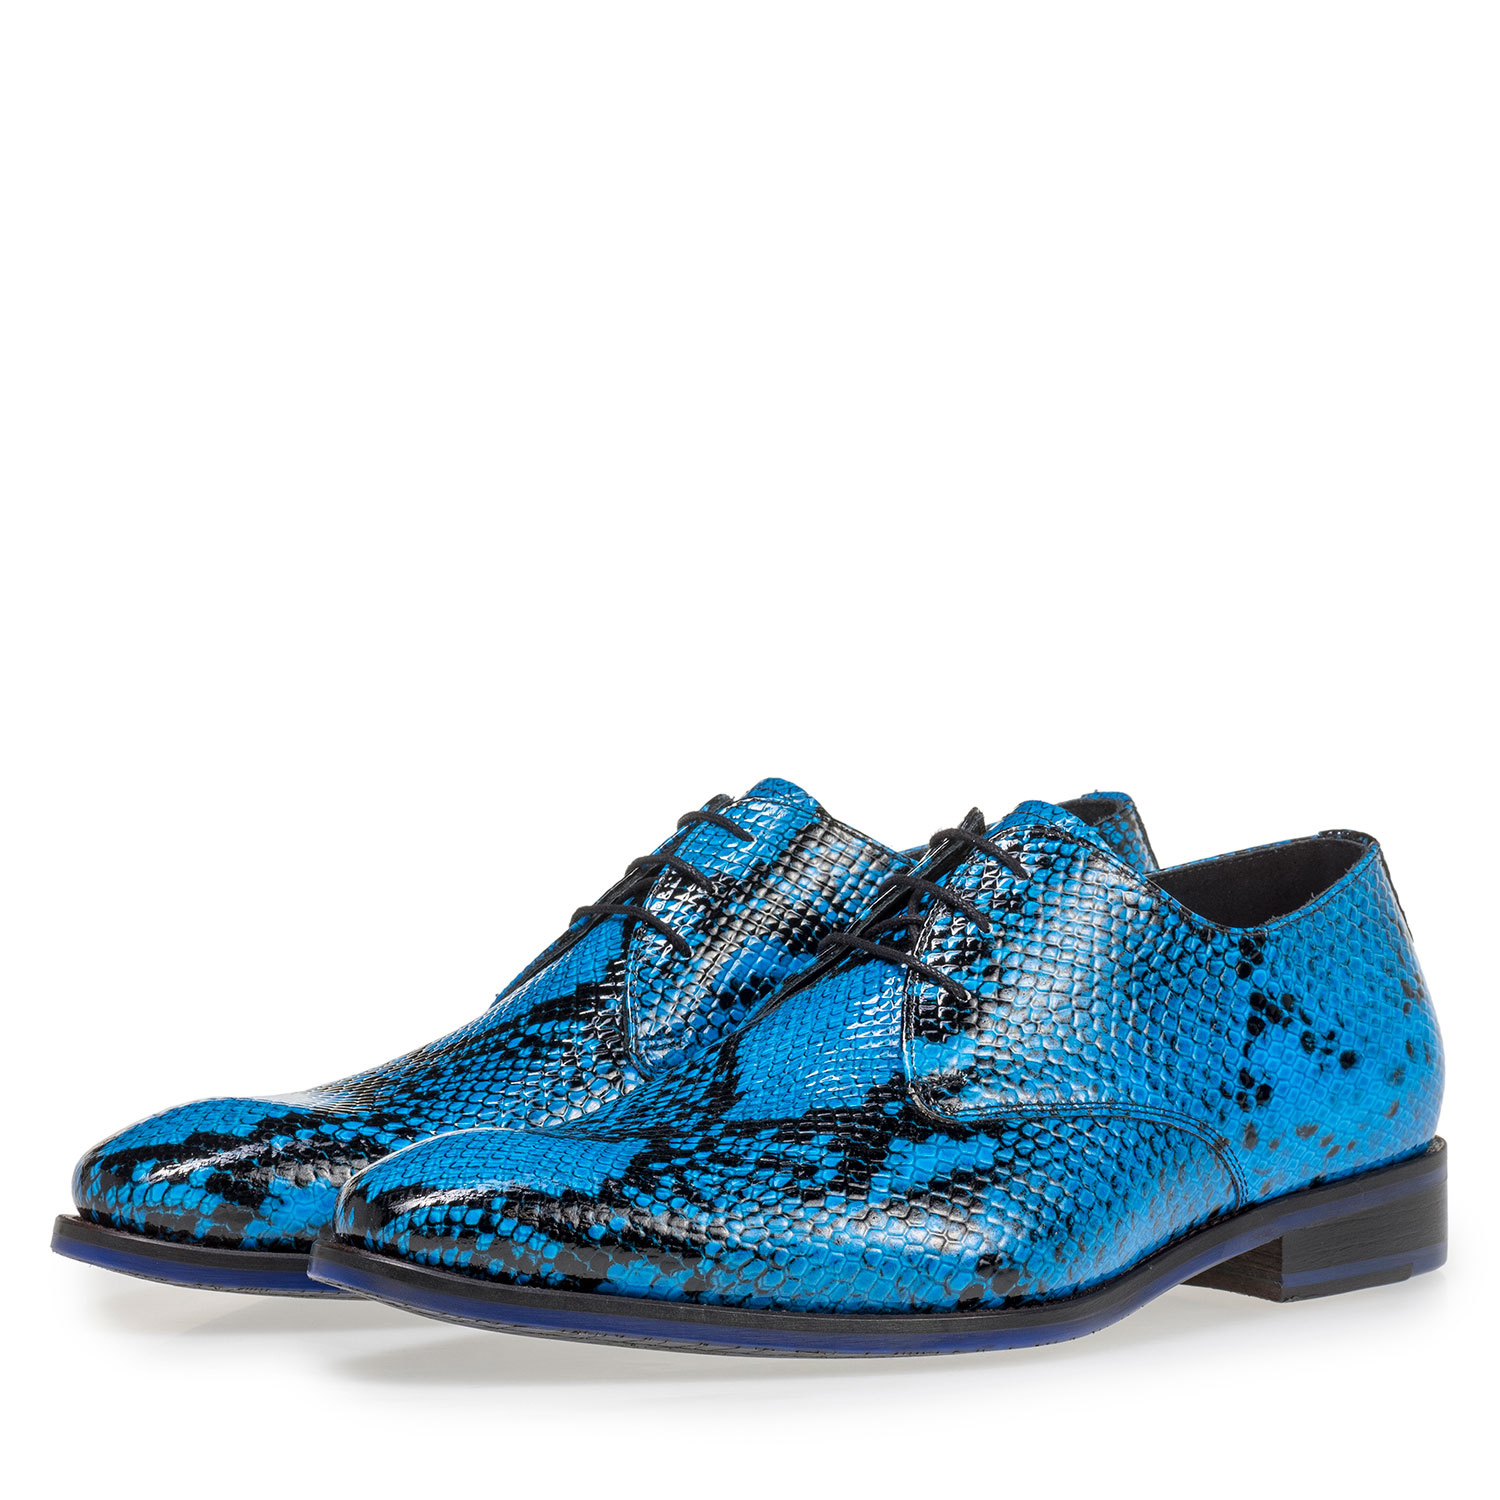 18124/07 - Premium blue lace shoe with snake print